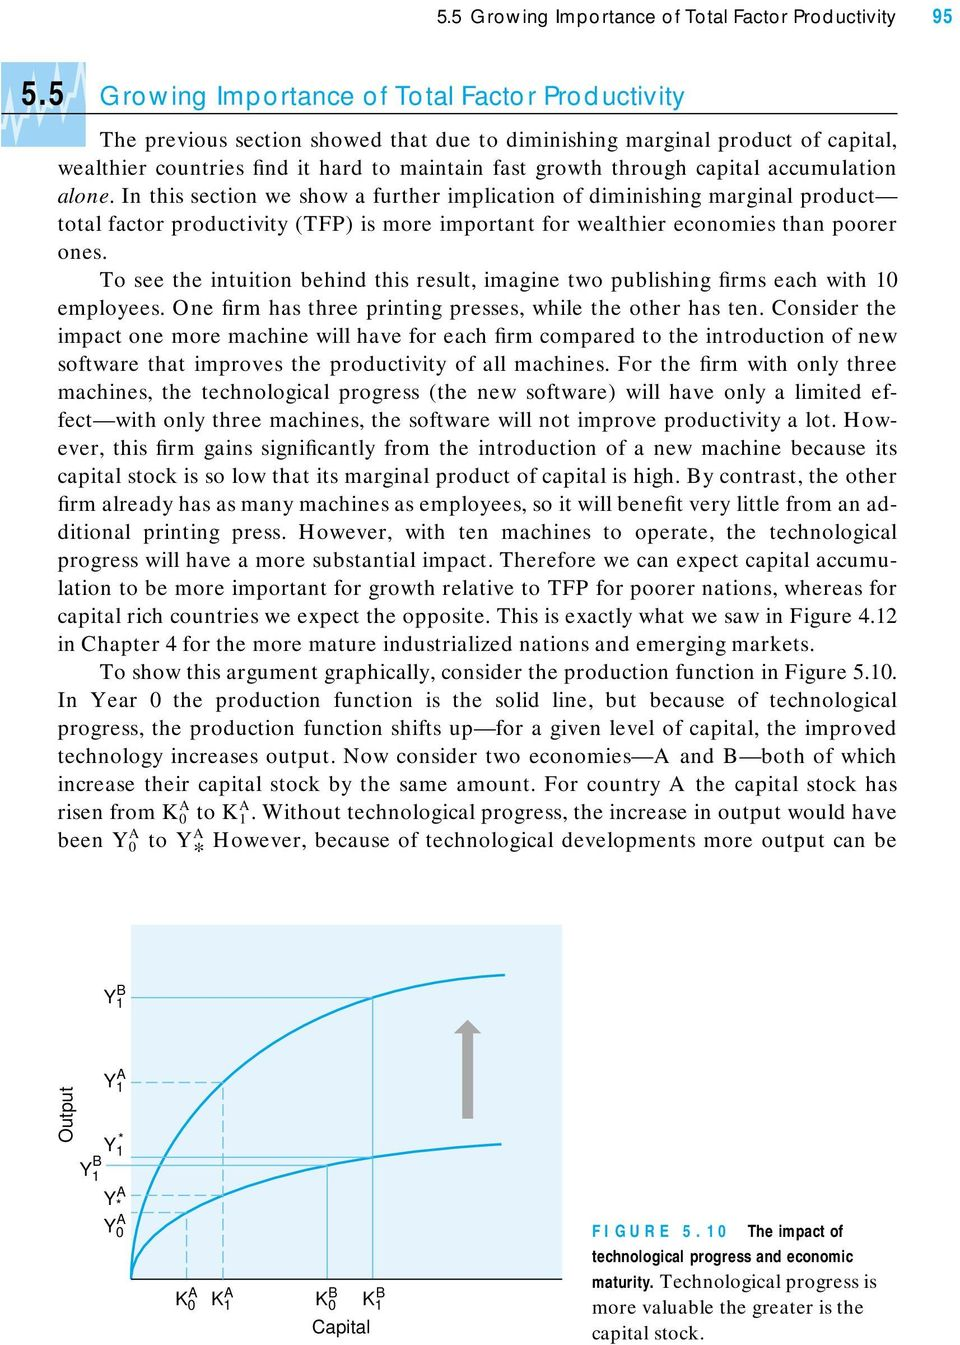 capital accumulation alone. In this section we show a further implication of diminishing marginal product total factor productivity (TFP) is more important for wealthier economies than poorer ones.